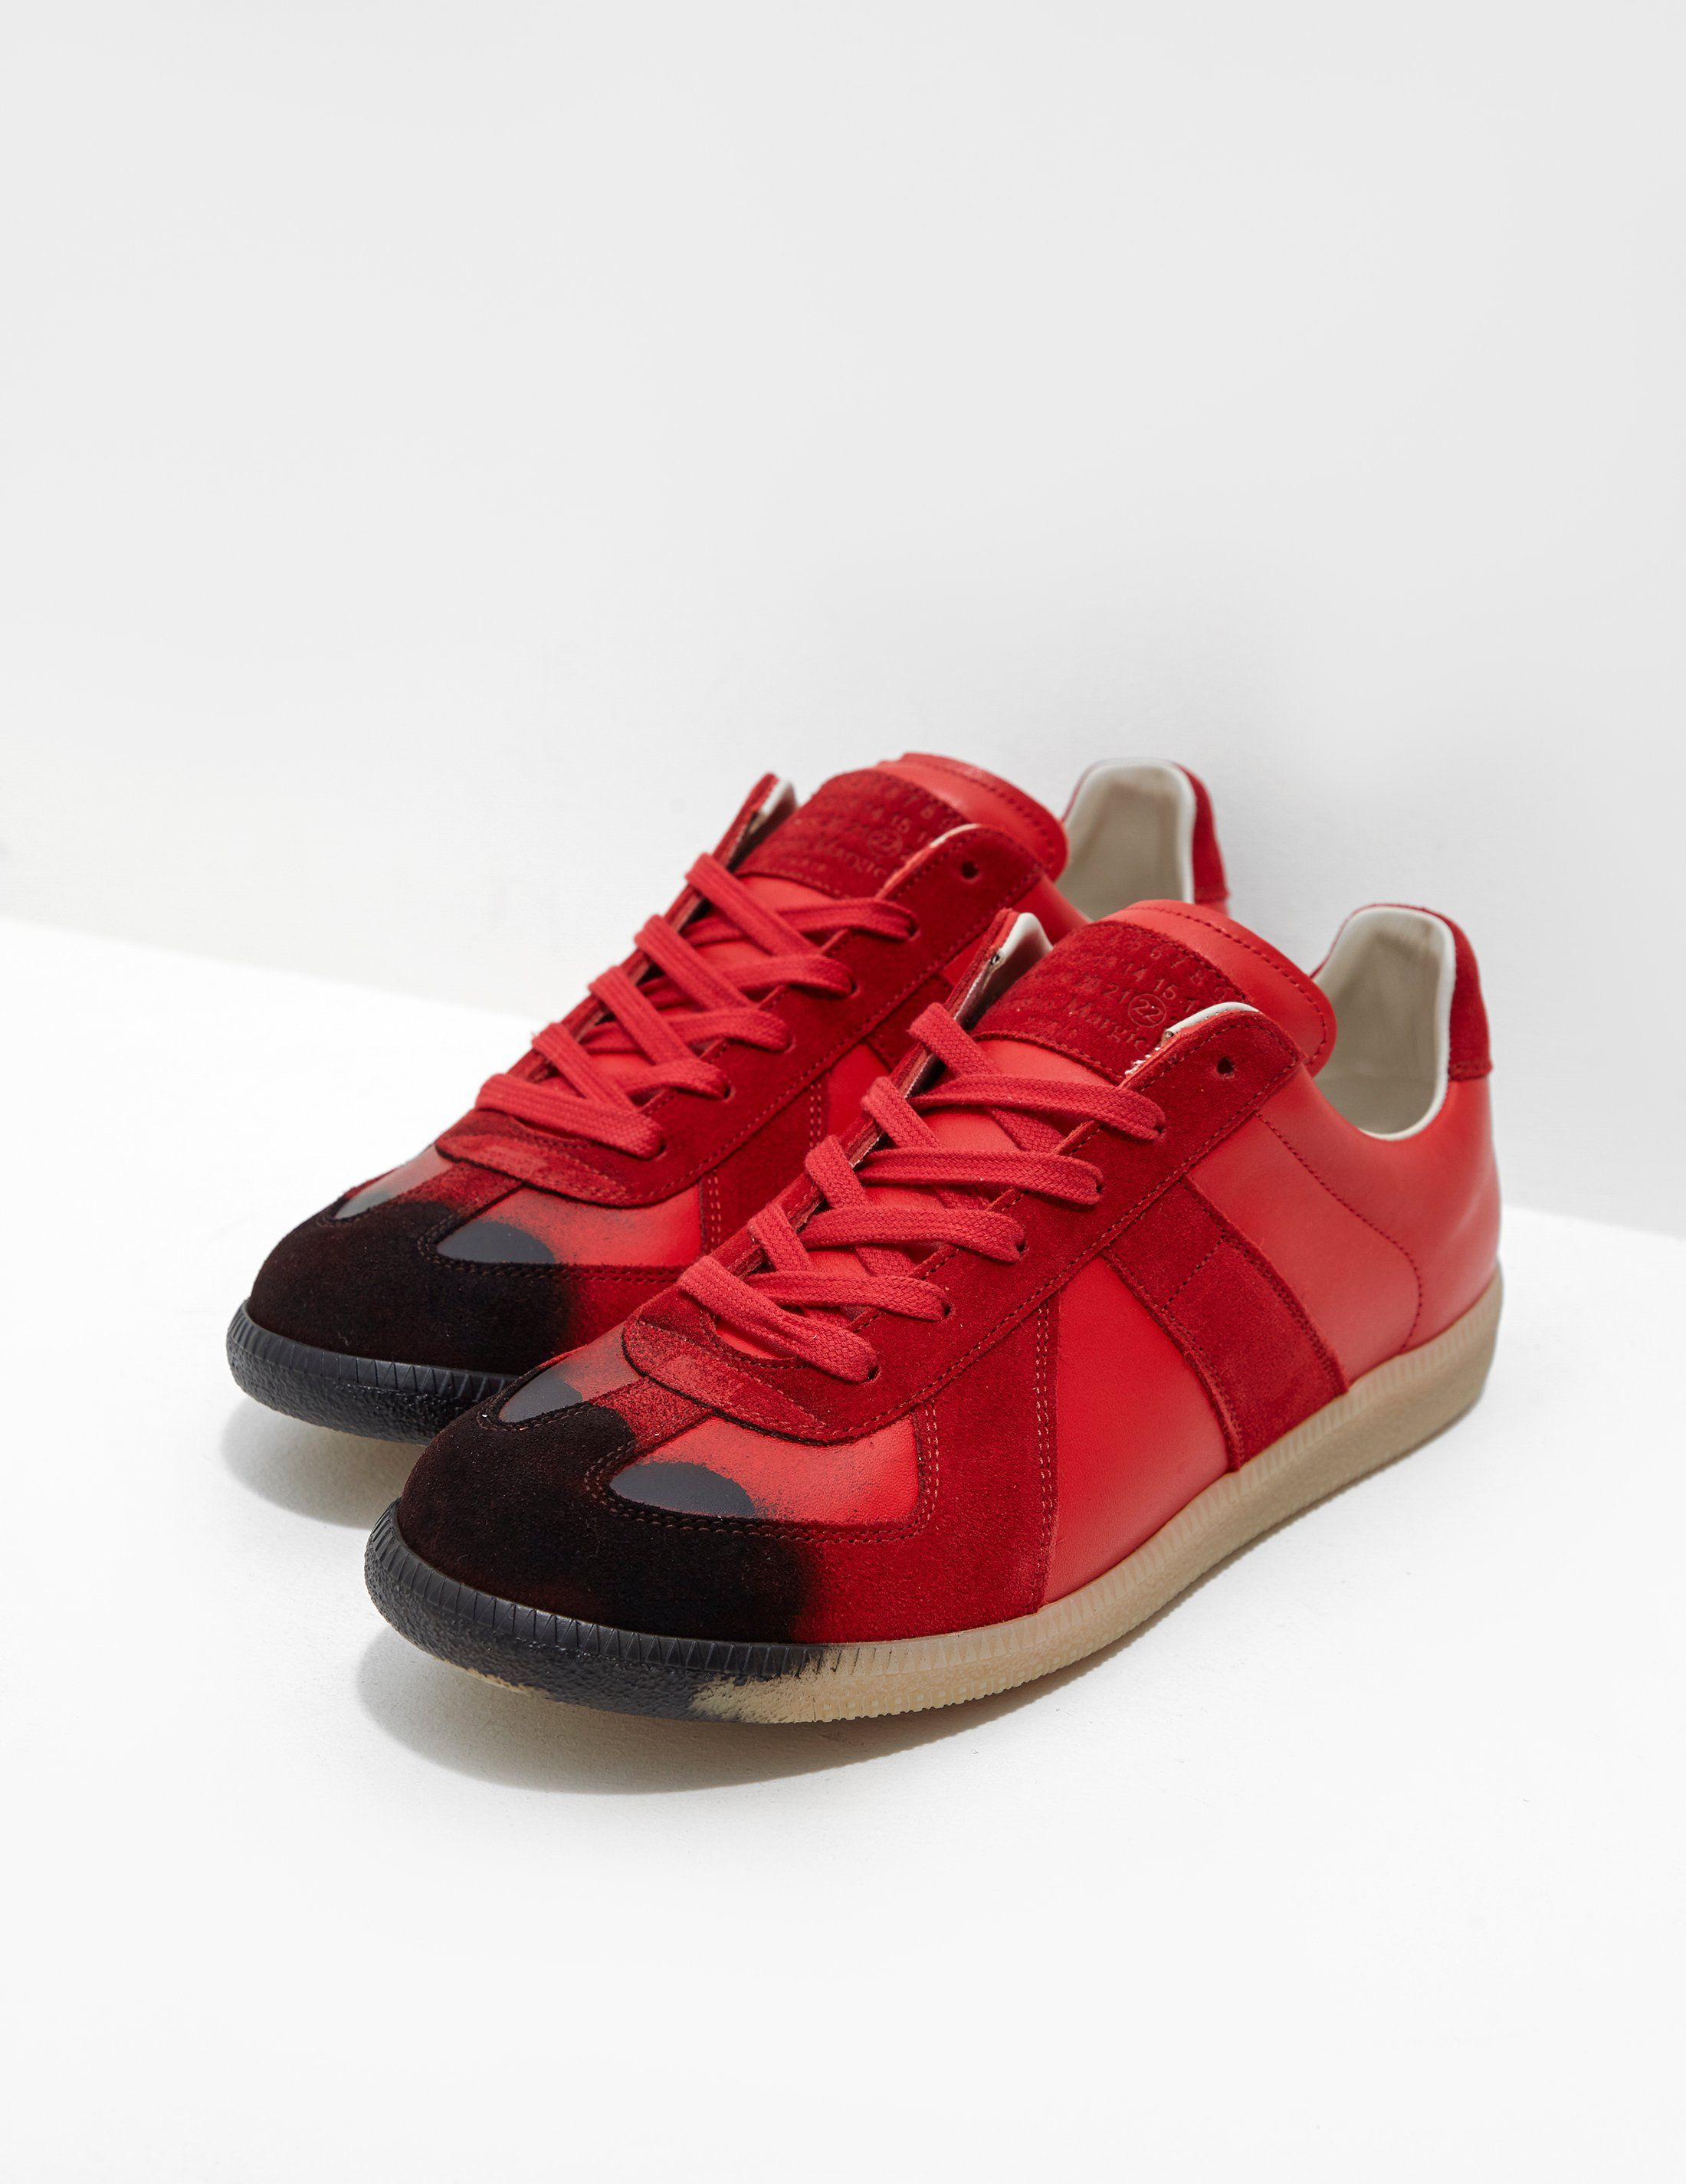 Maison Margiela Replica Spray Trainers